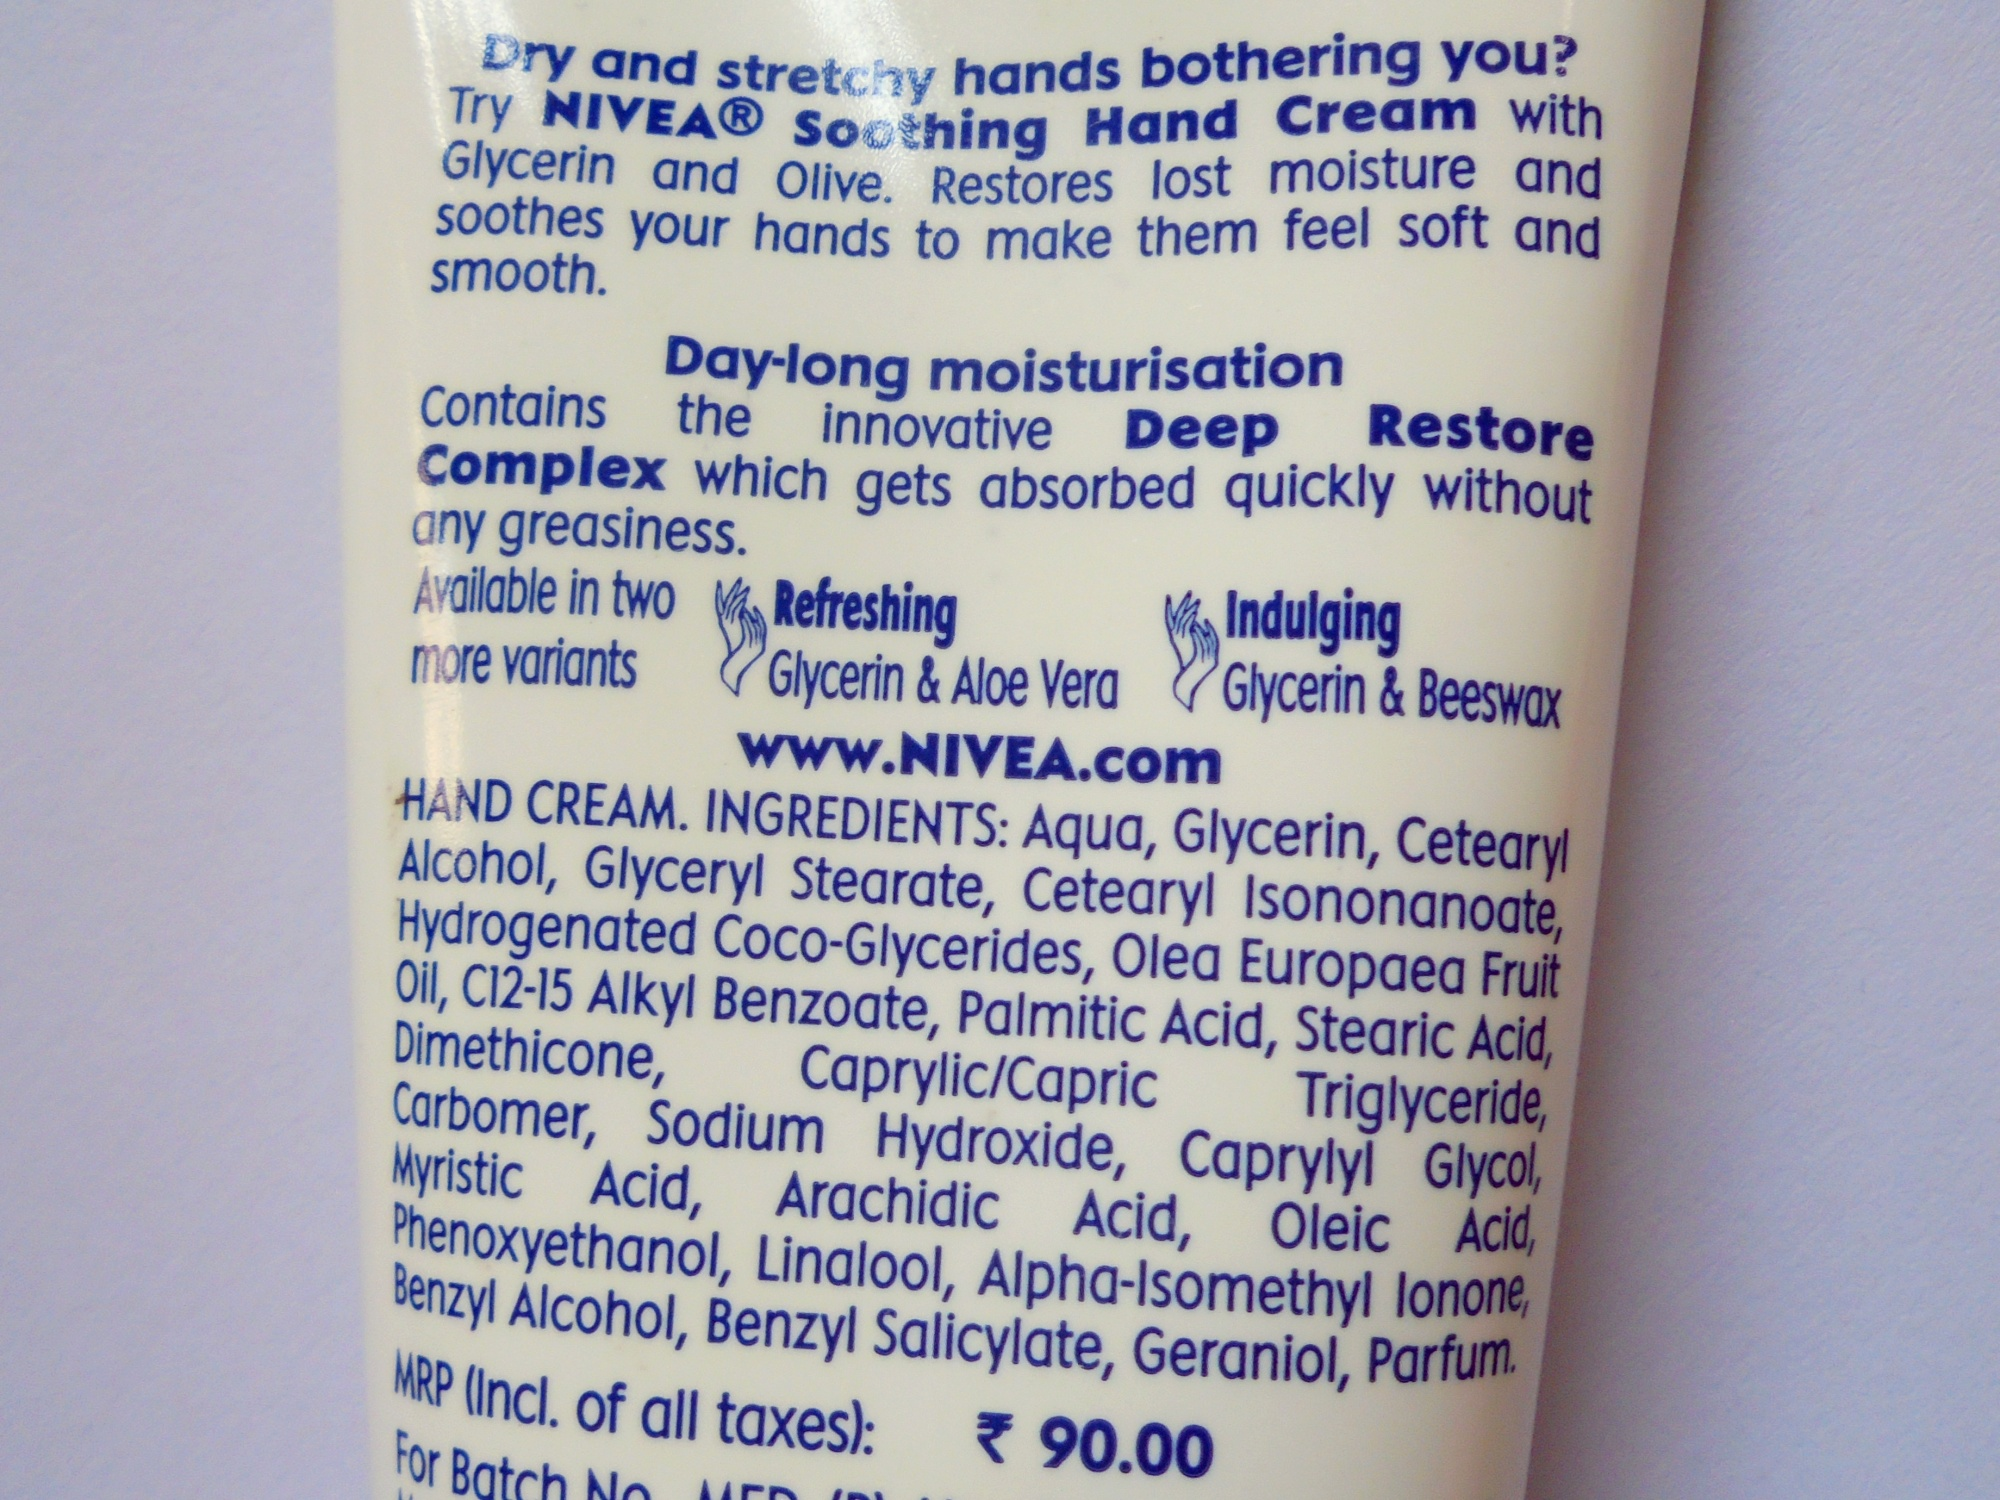 NIVEA Hand Cream Soothing Glycerin & Olive Review | Nykaa